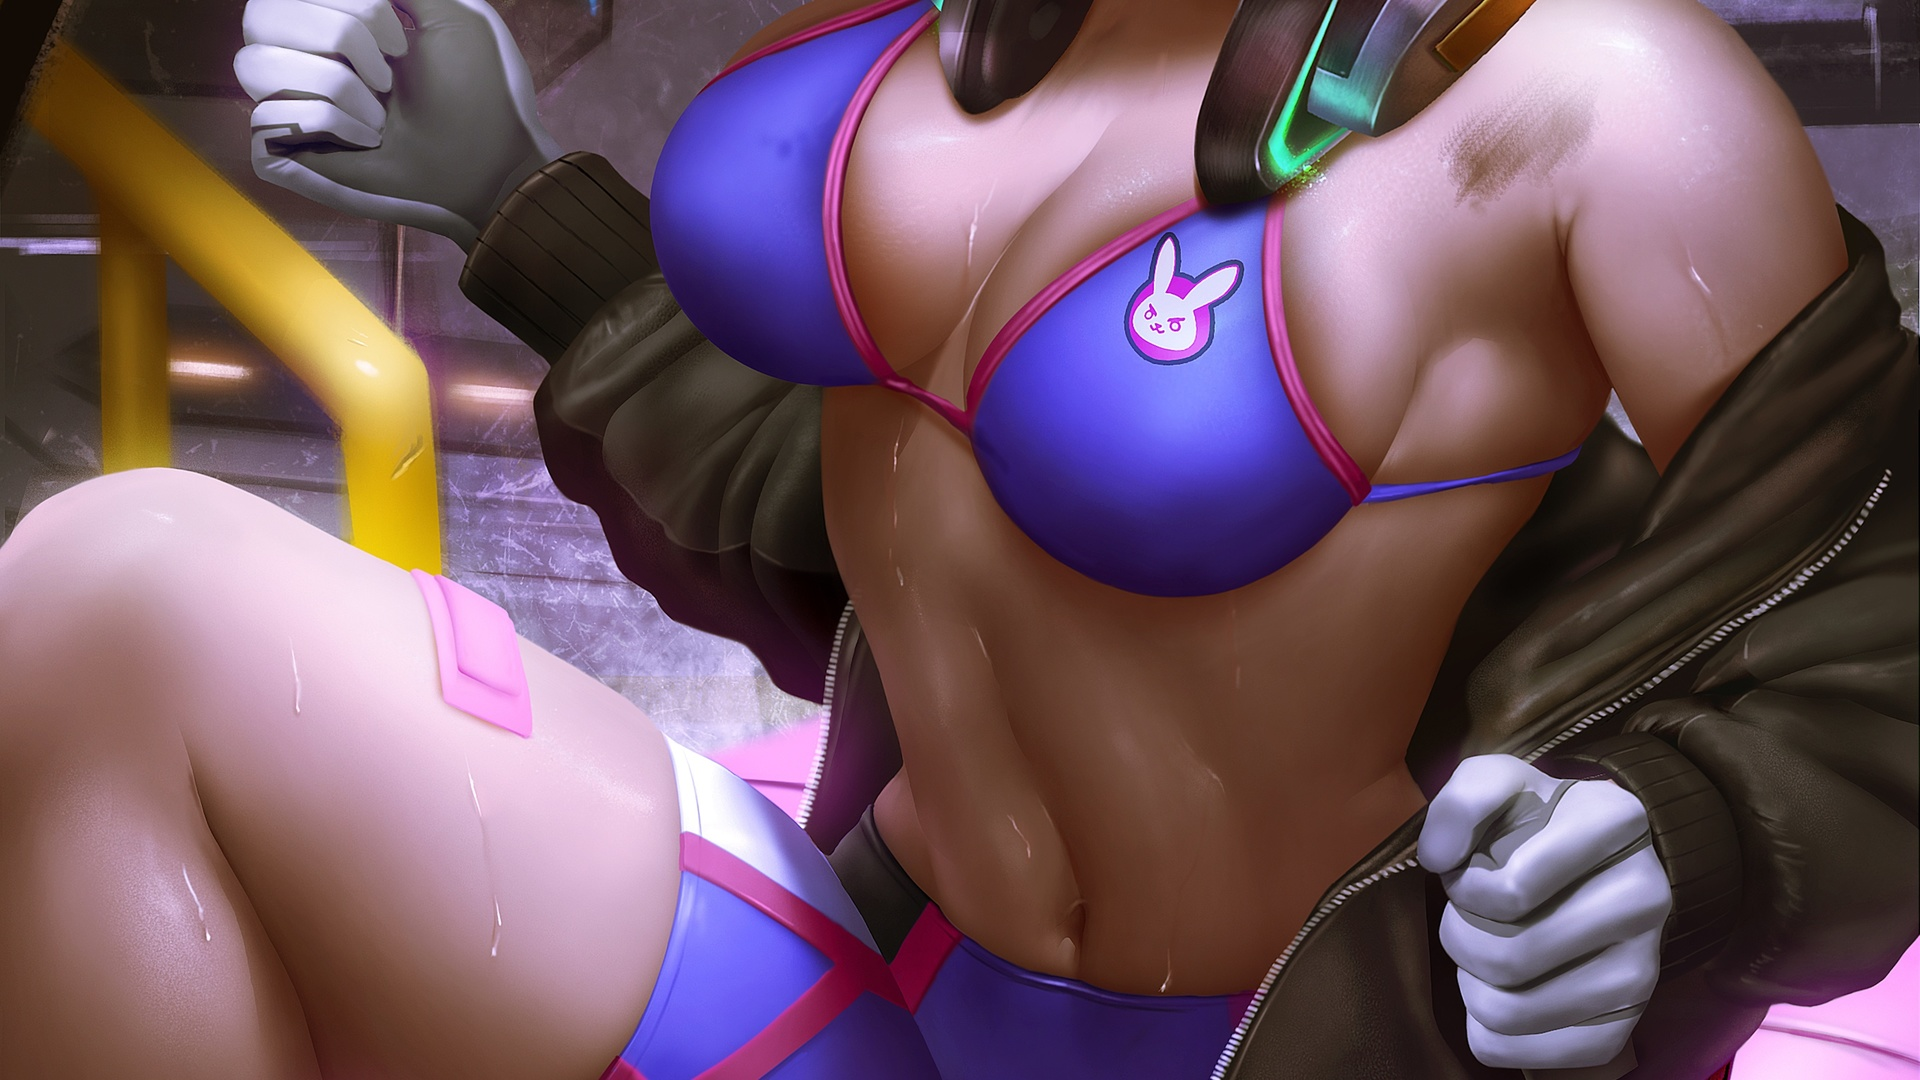 d.va, overwatch, game, boobs, girl, sexy, bra, tights, bindow, anime, window